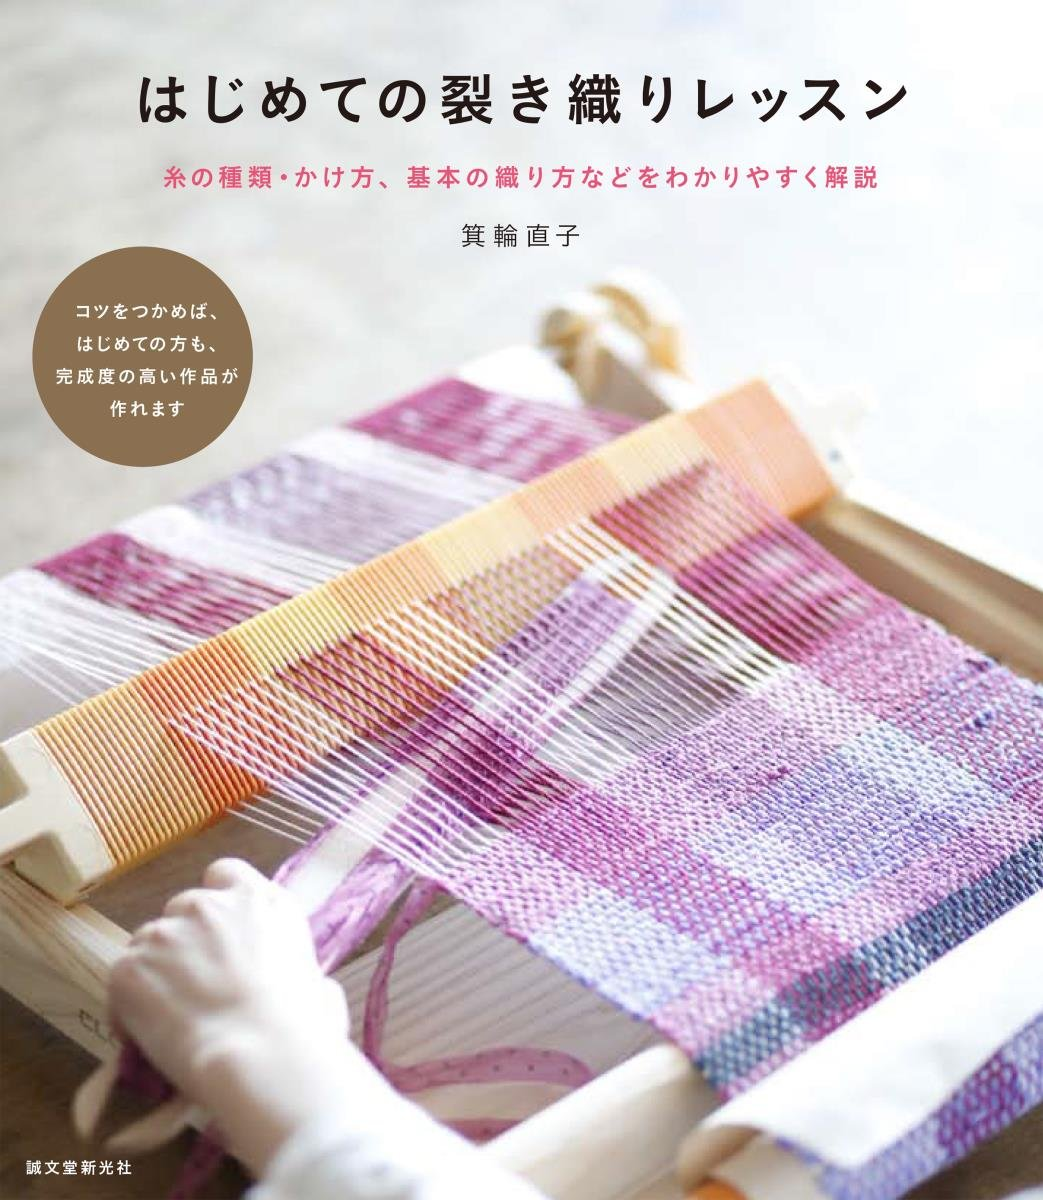 The first time previous weaving lesson